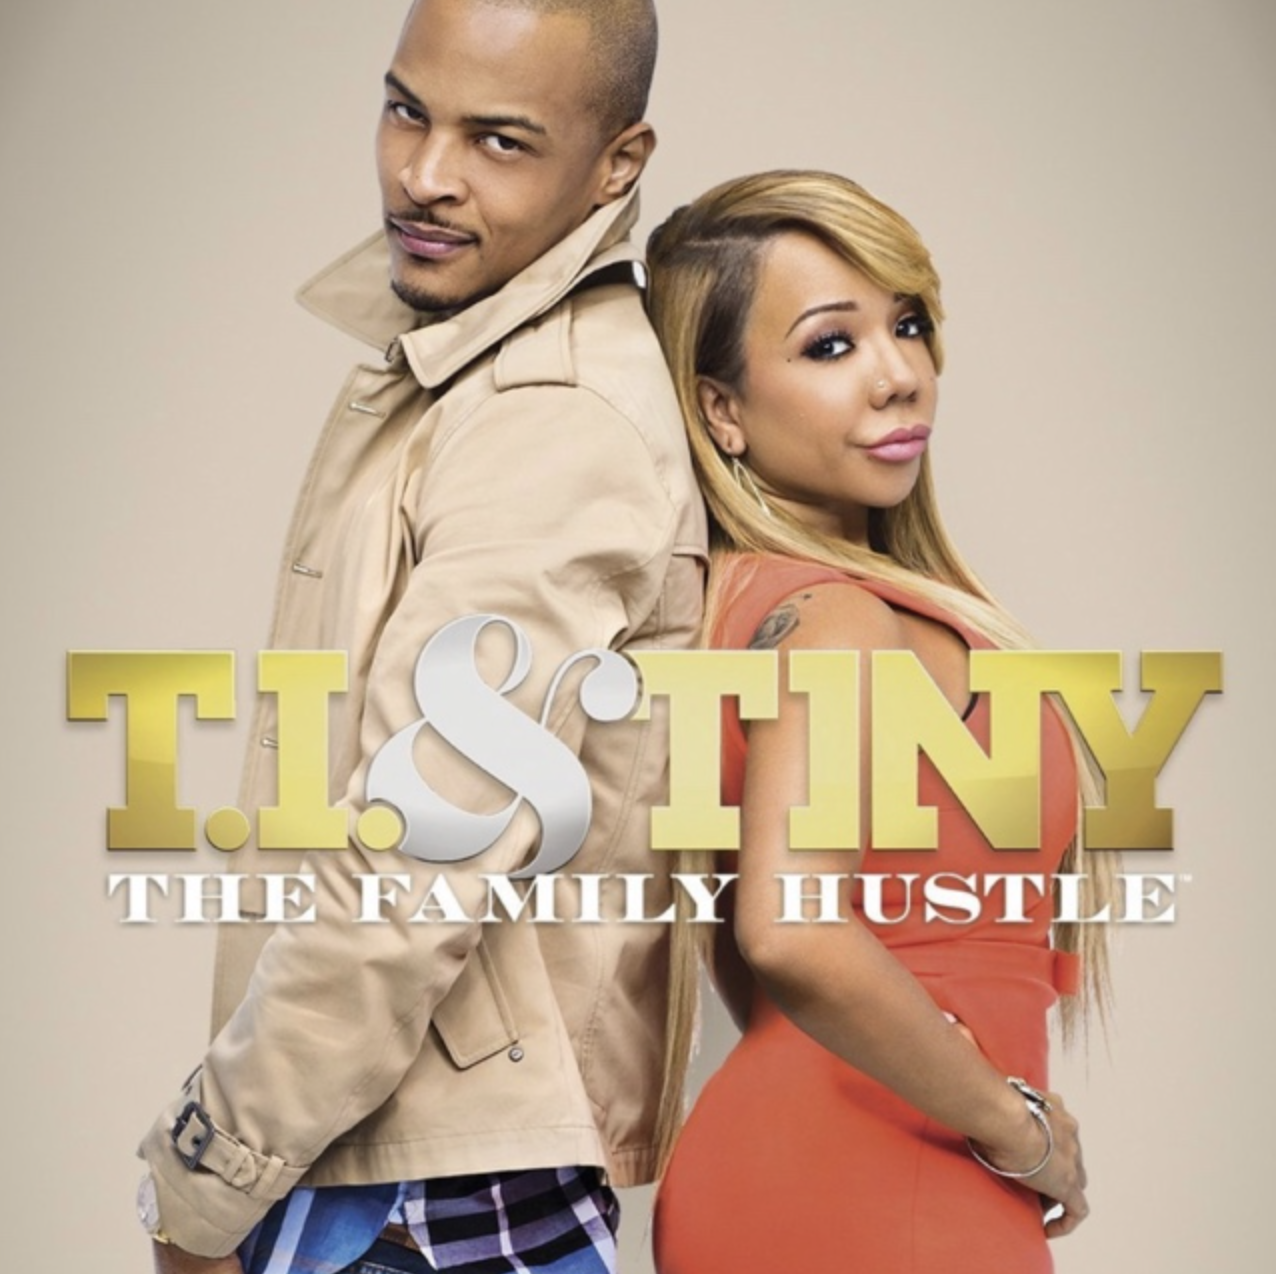 360 Magazine, T.I. & Tiny, The Family Hustle